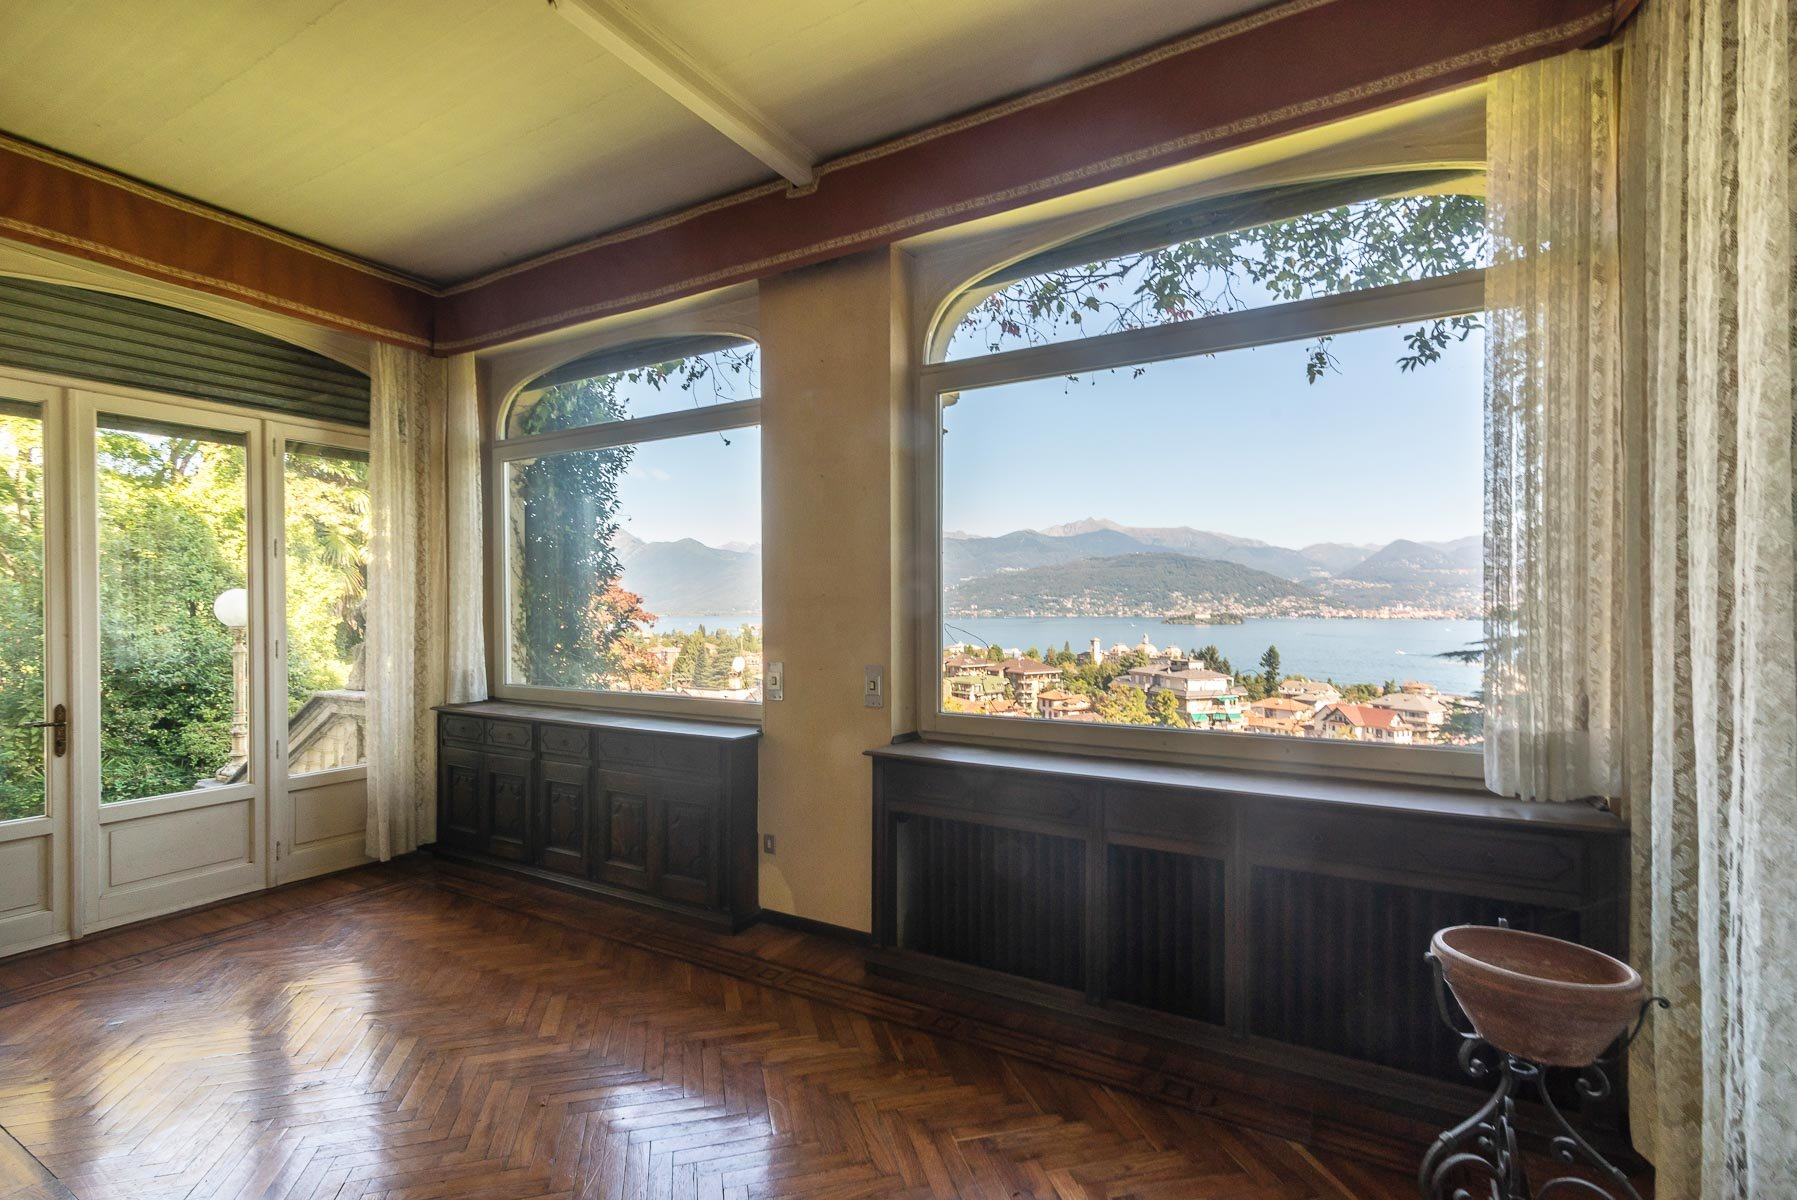 Liberty villa for sale in Stresa - room with a view